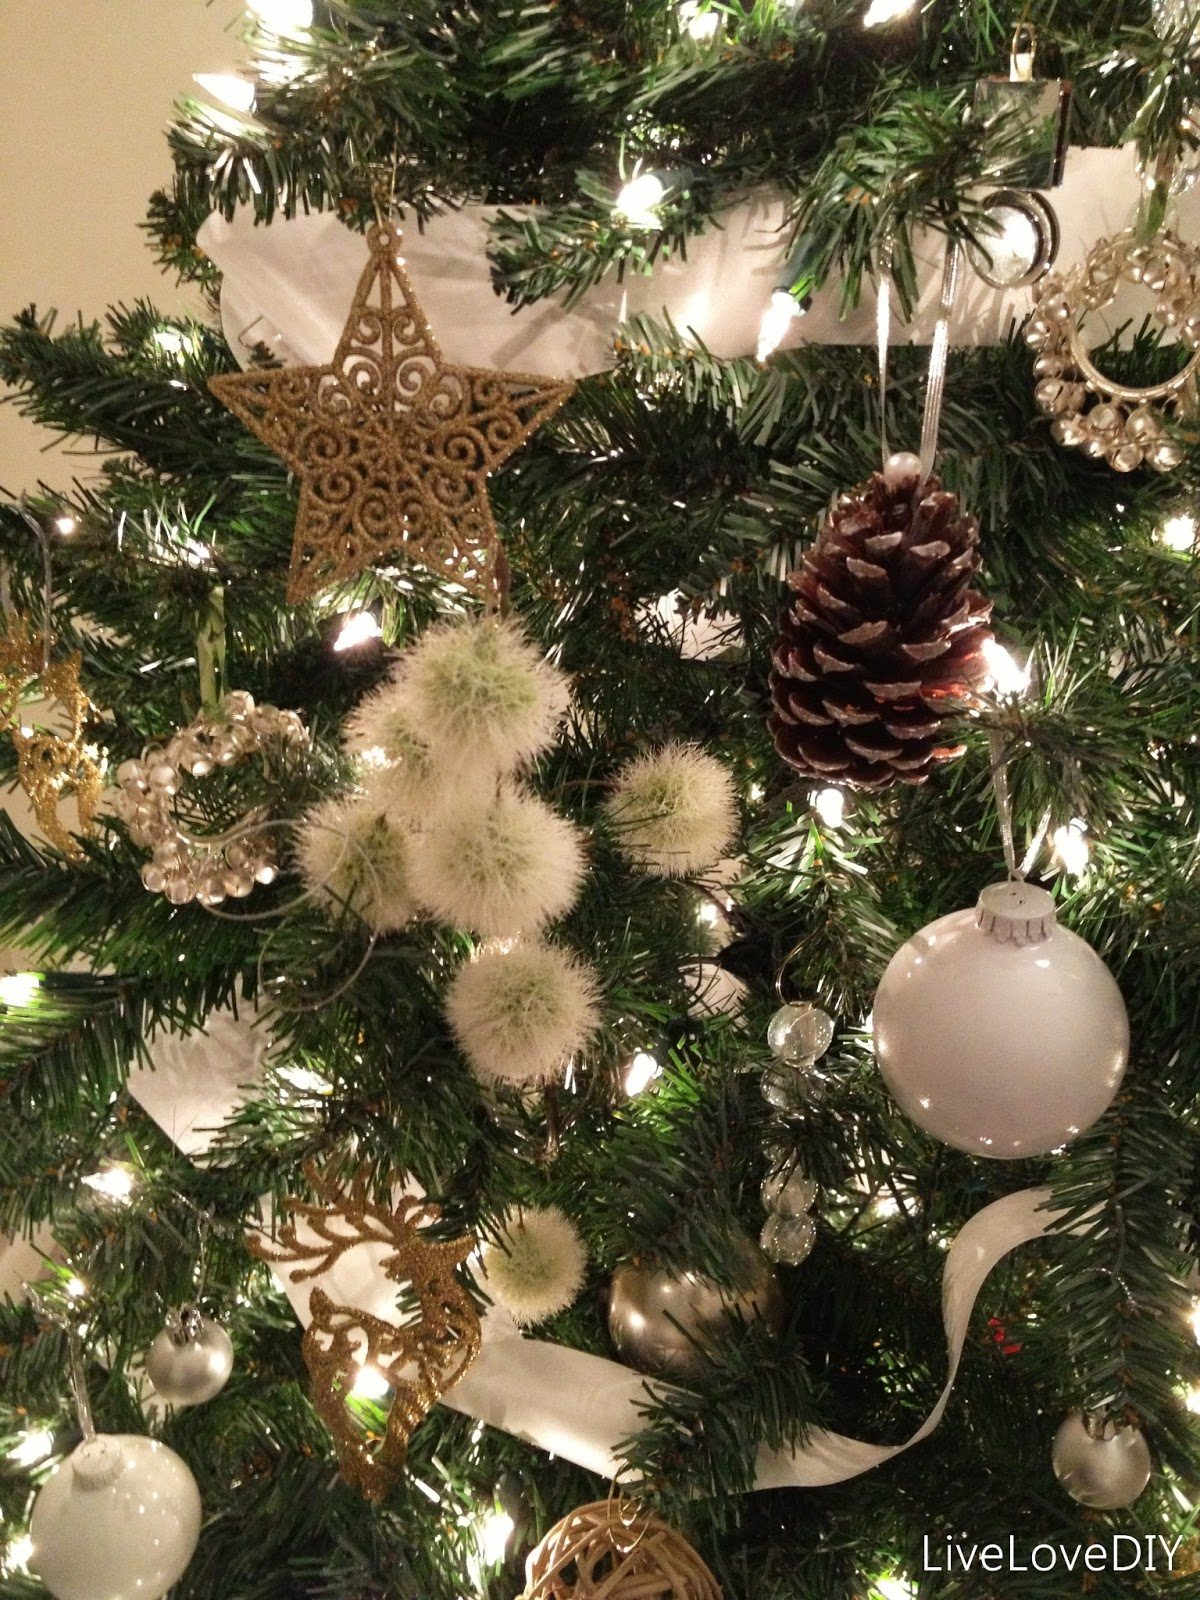 Livelovediy how to shop at a thrift store for christmas decor for Decorating pine cones for christmas tree